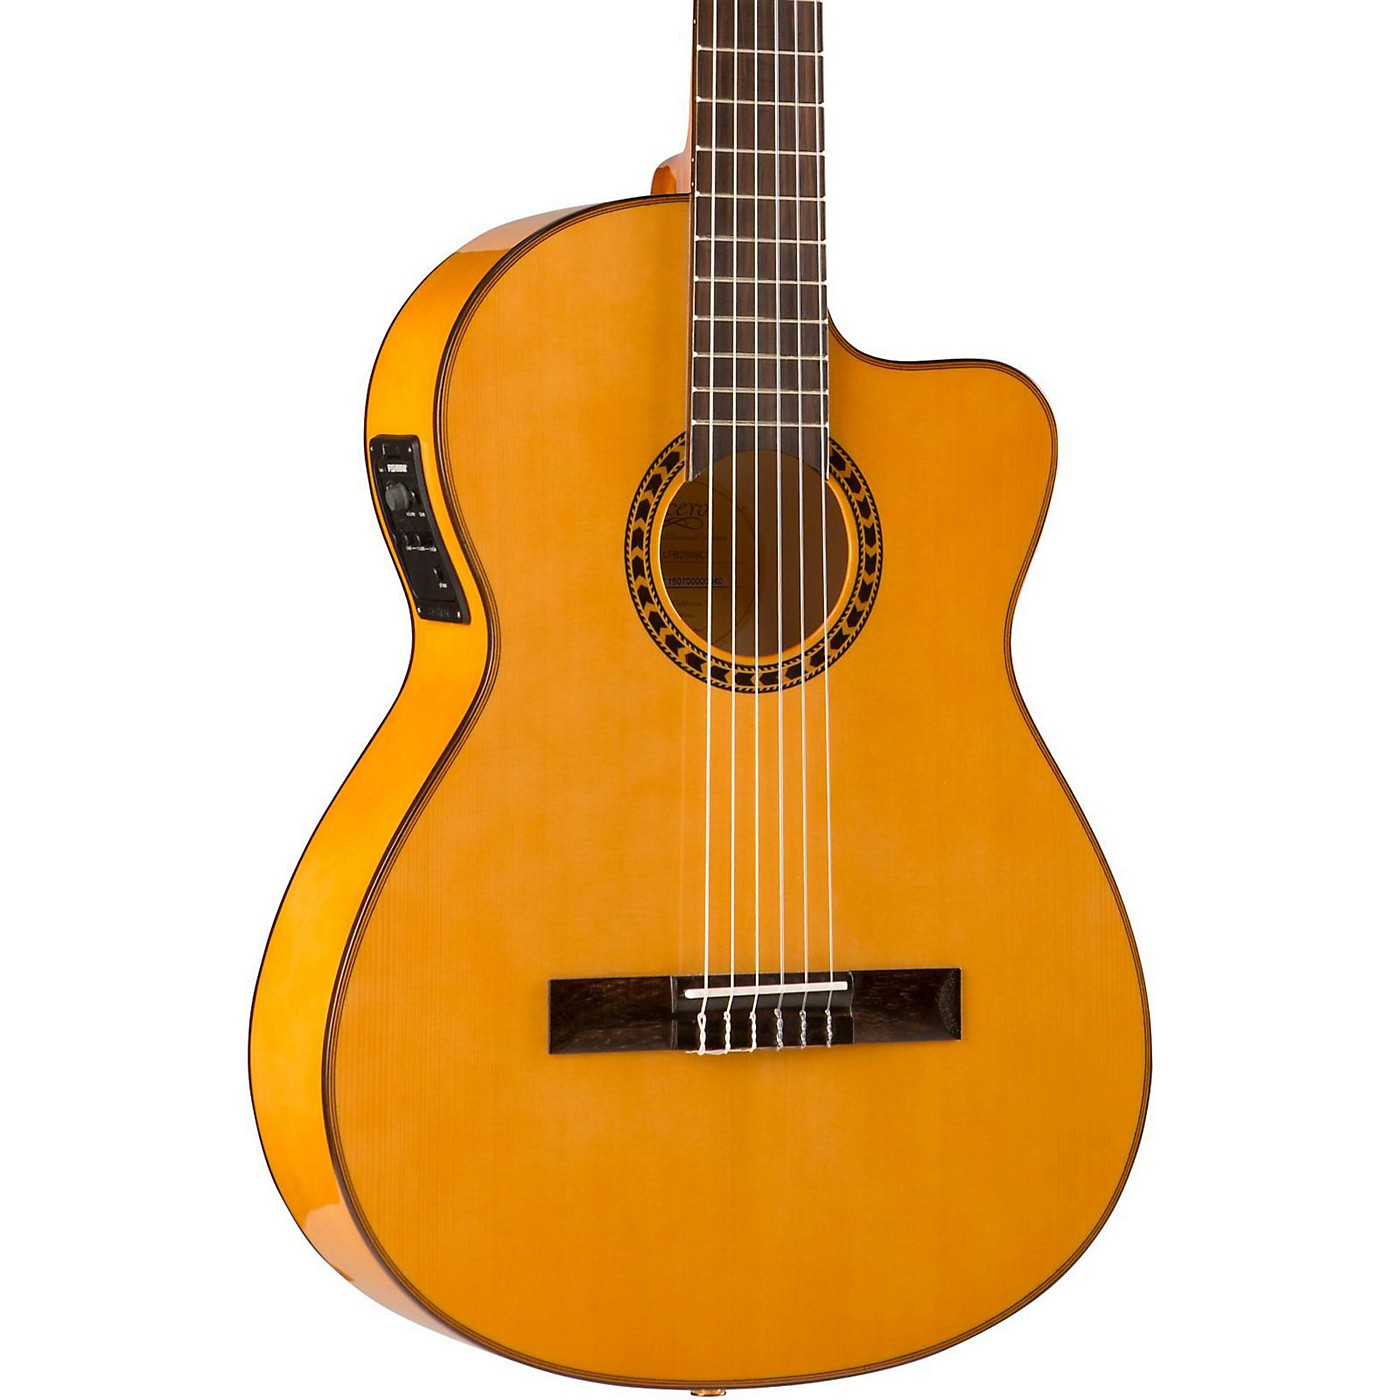 Lucero LFB250Sce Spruce/Cypress Thinline Acoustic-Electric Classical Guitar thumbnail